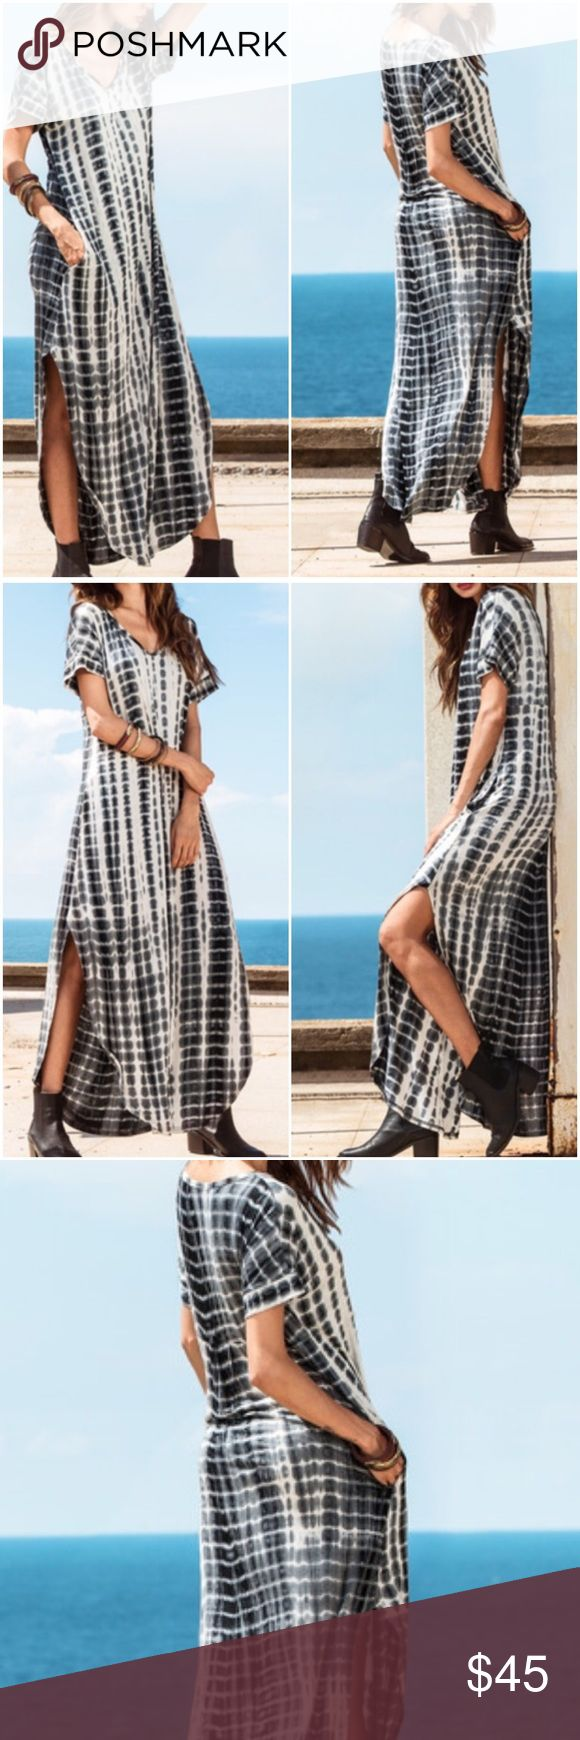 Tie Dye Split Curved Hem Maxi Dress. Price firm. Tie Dye print, split curved maxi dress. Side pockets. Color-black/white. Material-Rayon. Please use size chart for exact measurements. (#5506) Also available in Coffee/brown/white  Tie Dye, see separate listing. Boutique Dresses Maxi